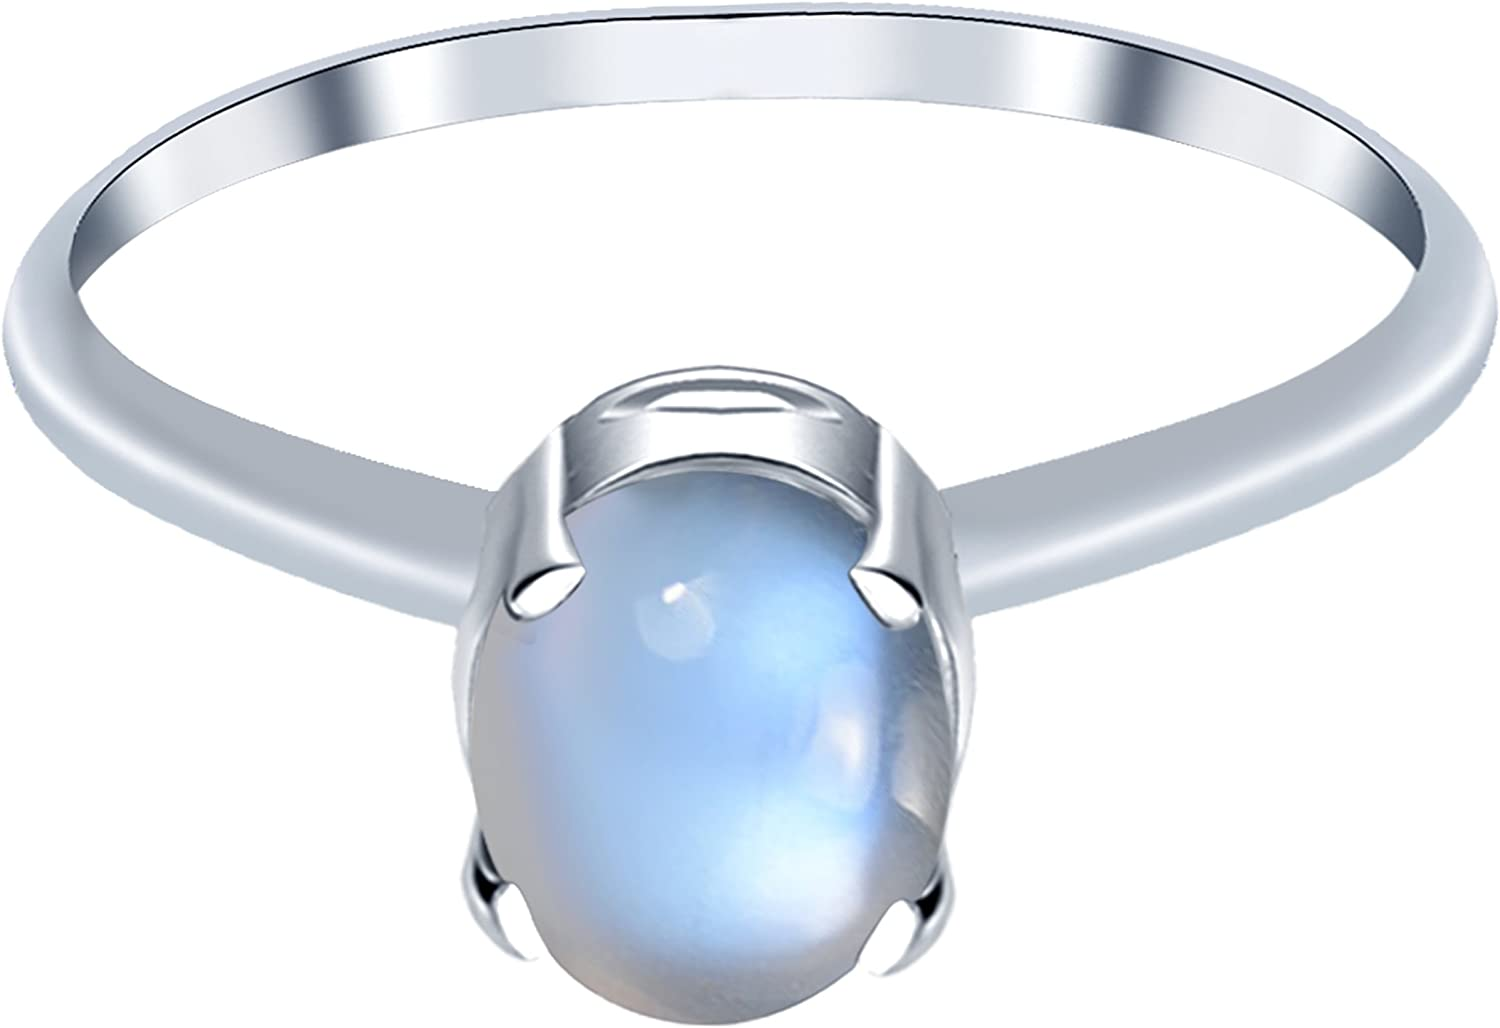 Natural June Birthstone Gemstone Rings 925 Sterling Silver Solitaire Ring For Girls Orchid Jewelry 1.10 Ctw 7x5mm Oval Grey Moonstone Ring For Women A Simple and Beautiful Birthday Gift For Wife